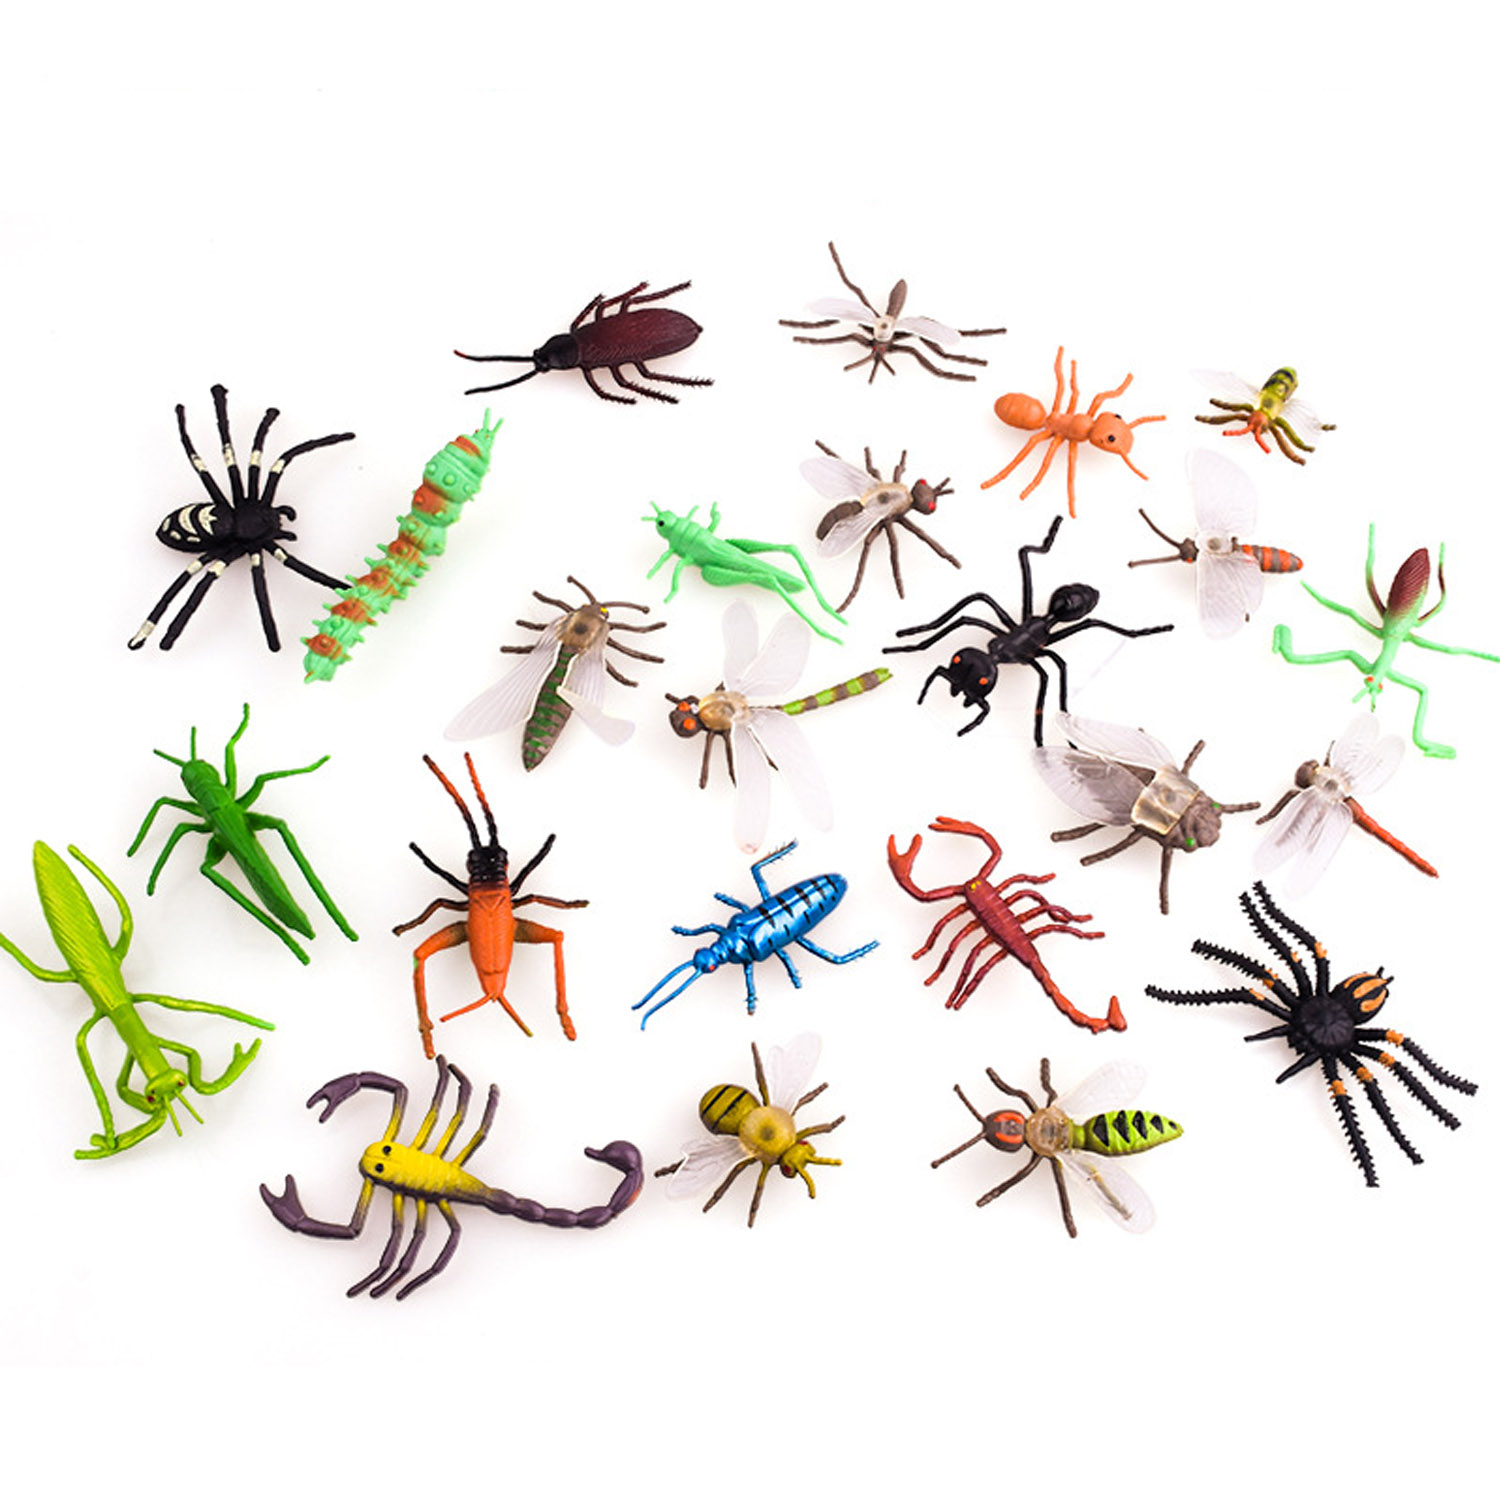 Kids 12PCS Mini Simulation PVC Insect Animals Spider Cockroach Ladybird Mantis Grasshopper Dragonfly Ant Figures Models Toys